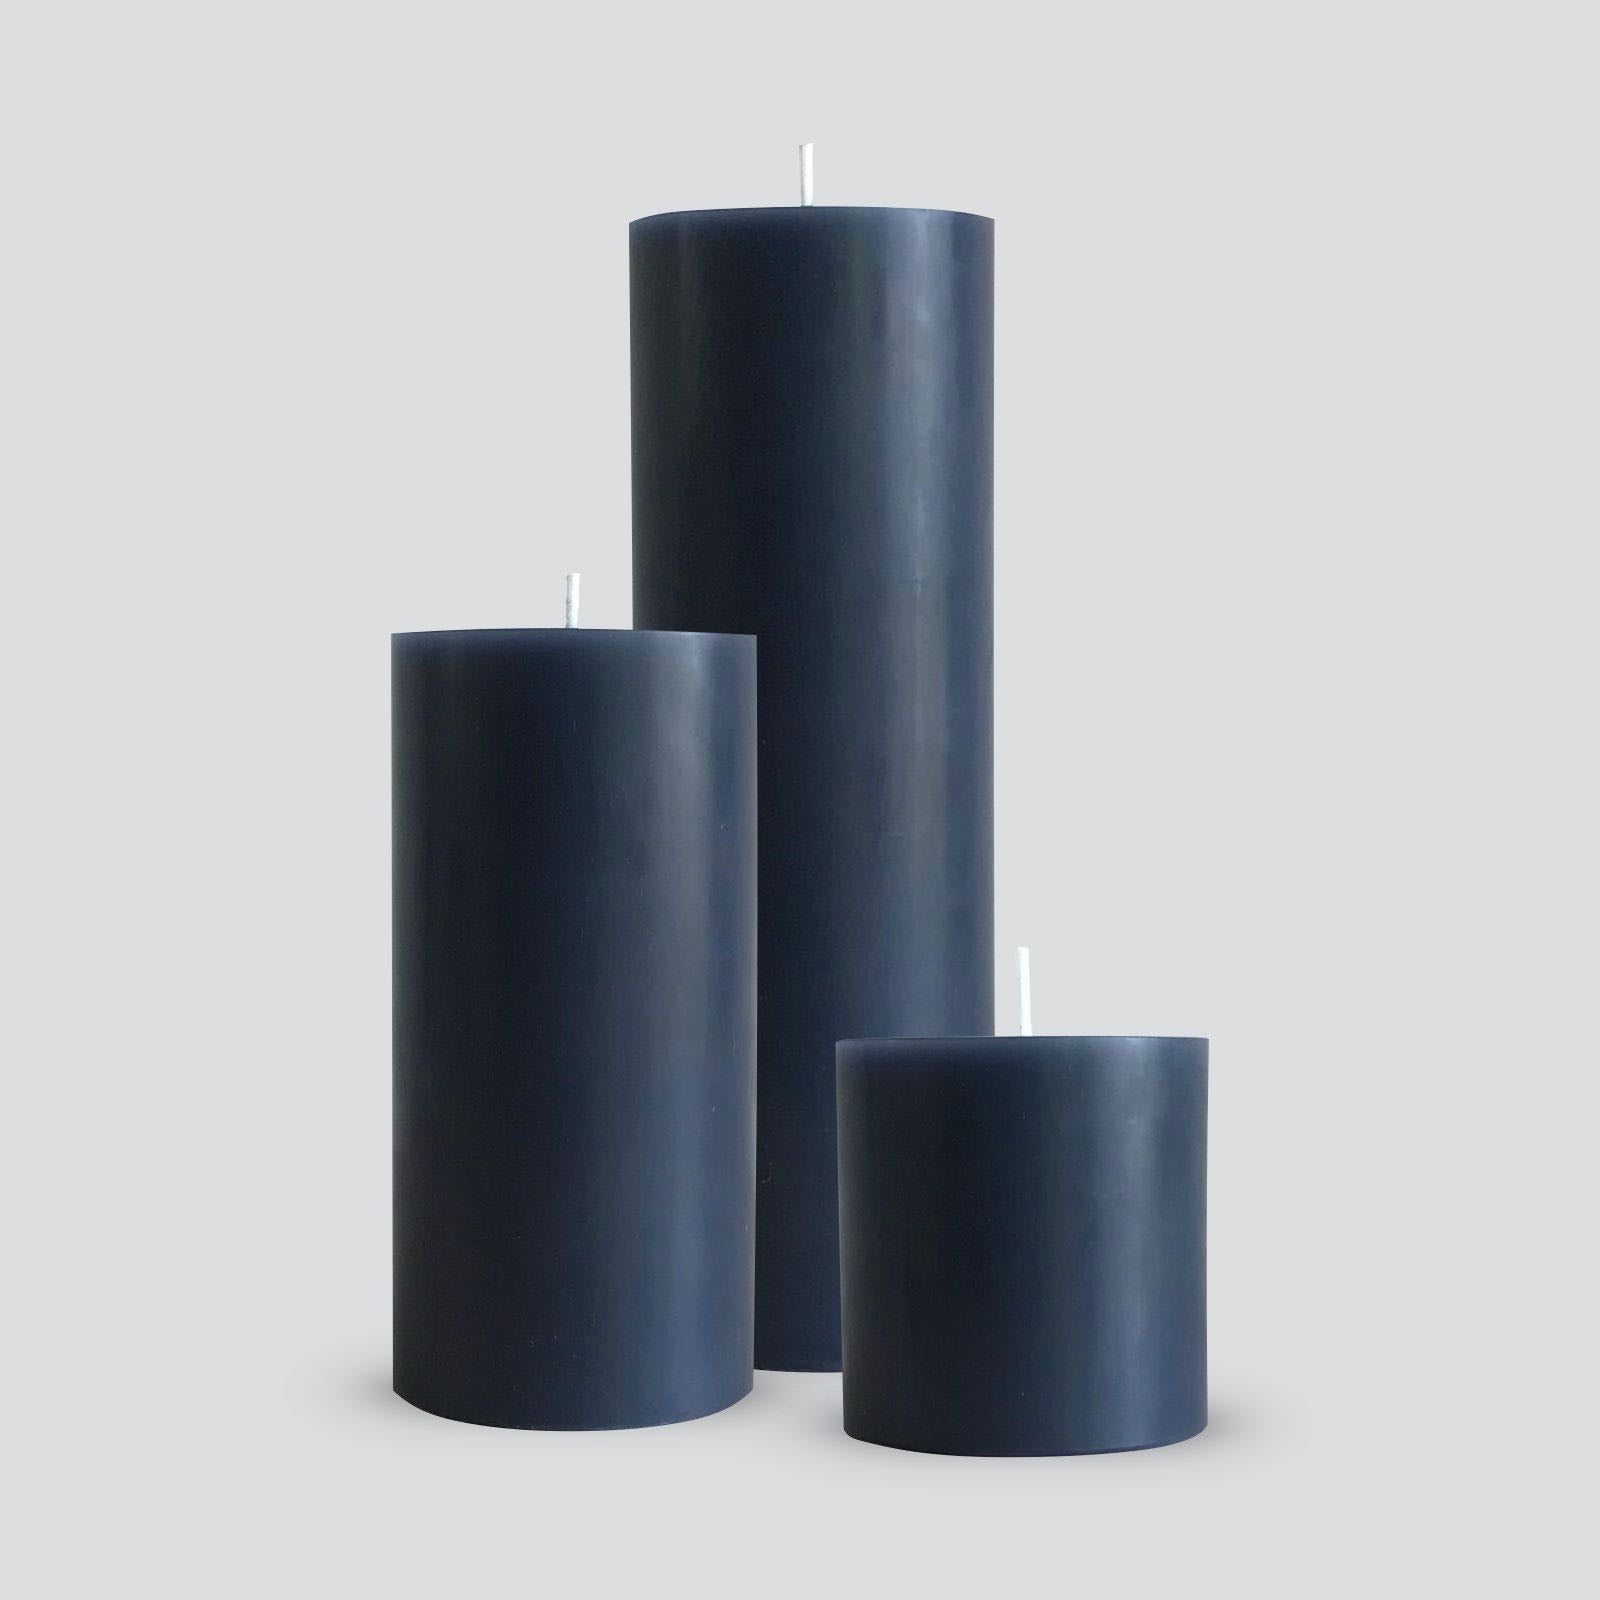 Large grey pillar candles